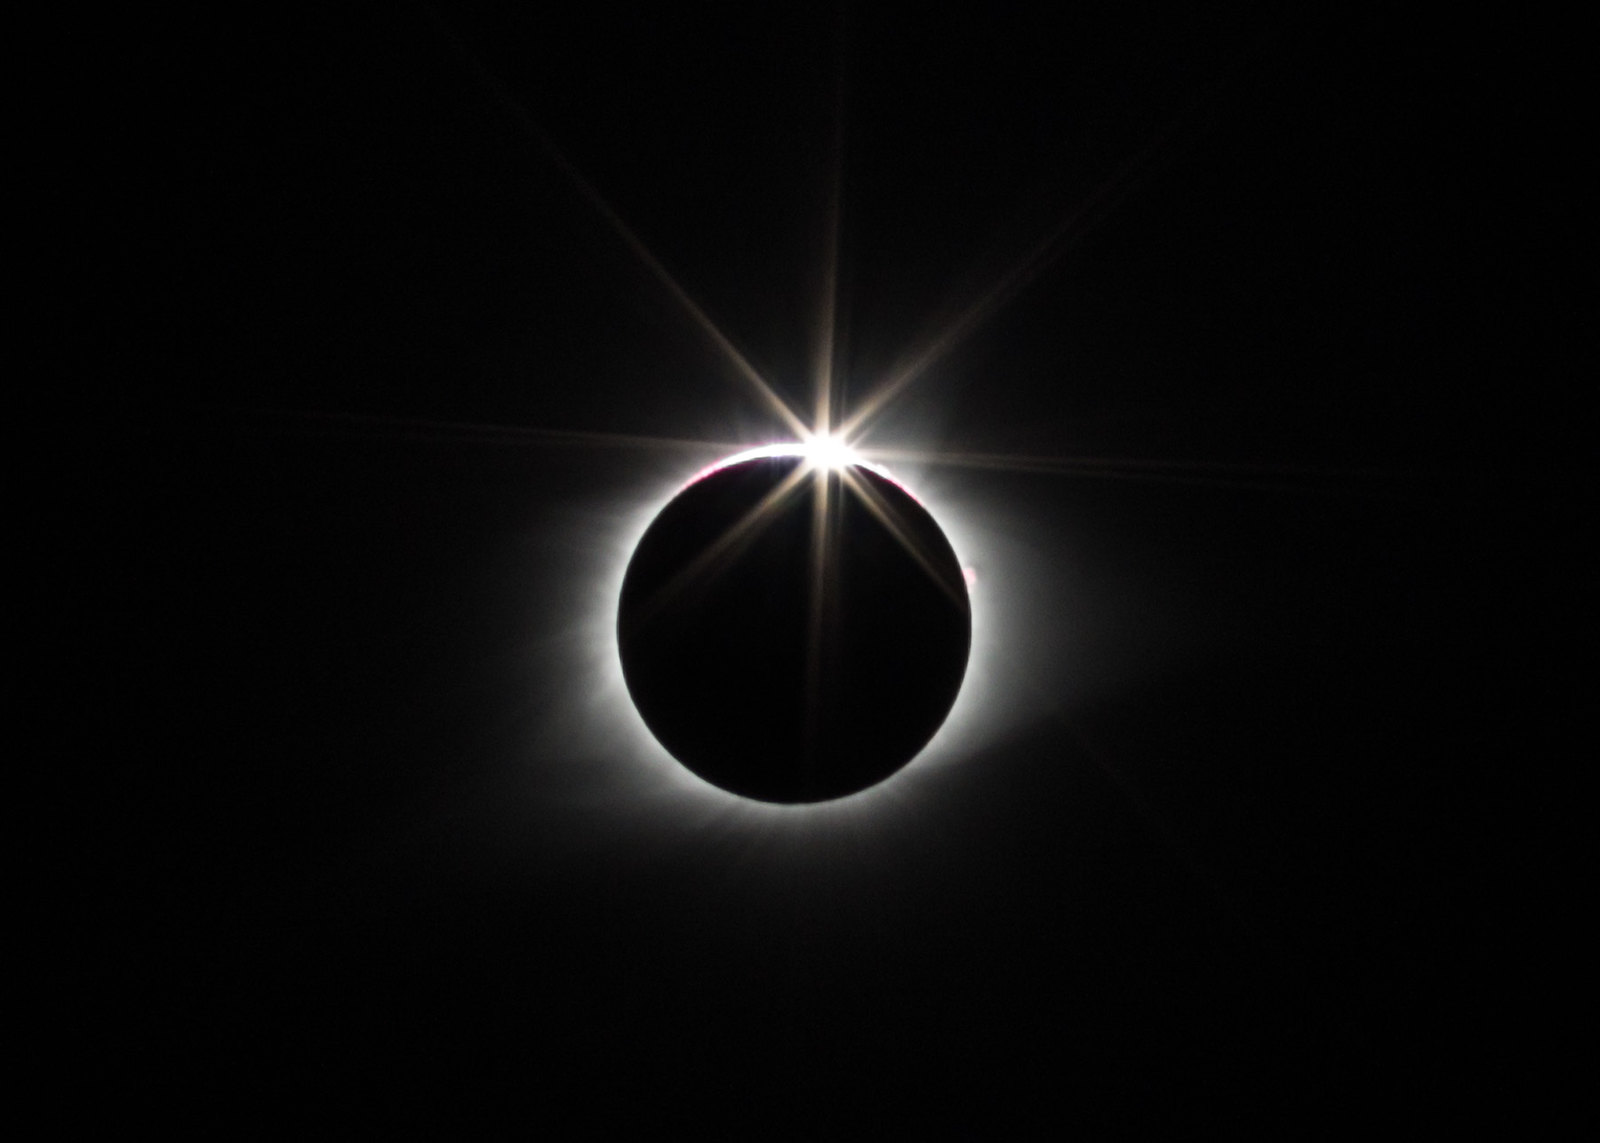 Diamond Ring, Pentax K-01, smc PENTAX-F 80-200mm F4.7-5.6